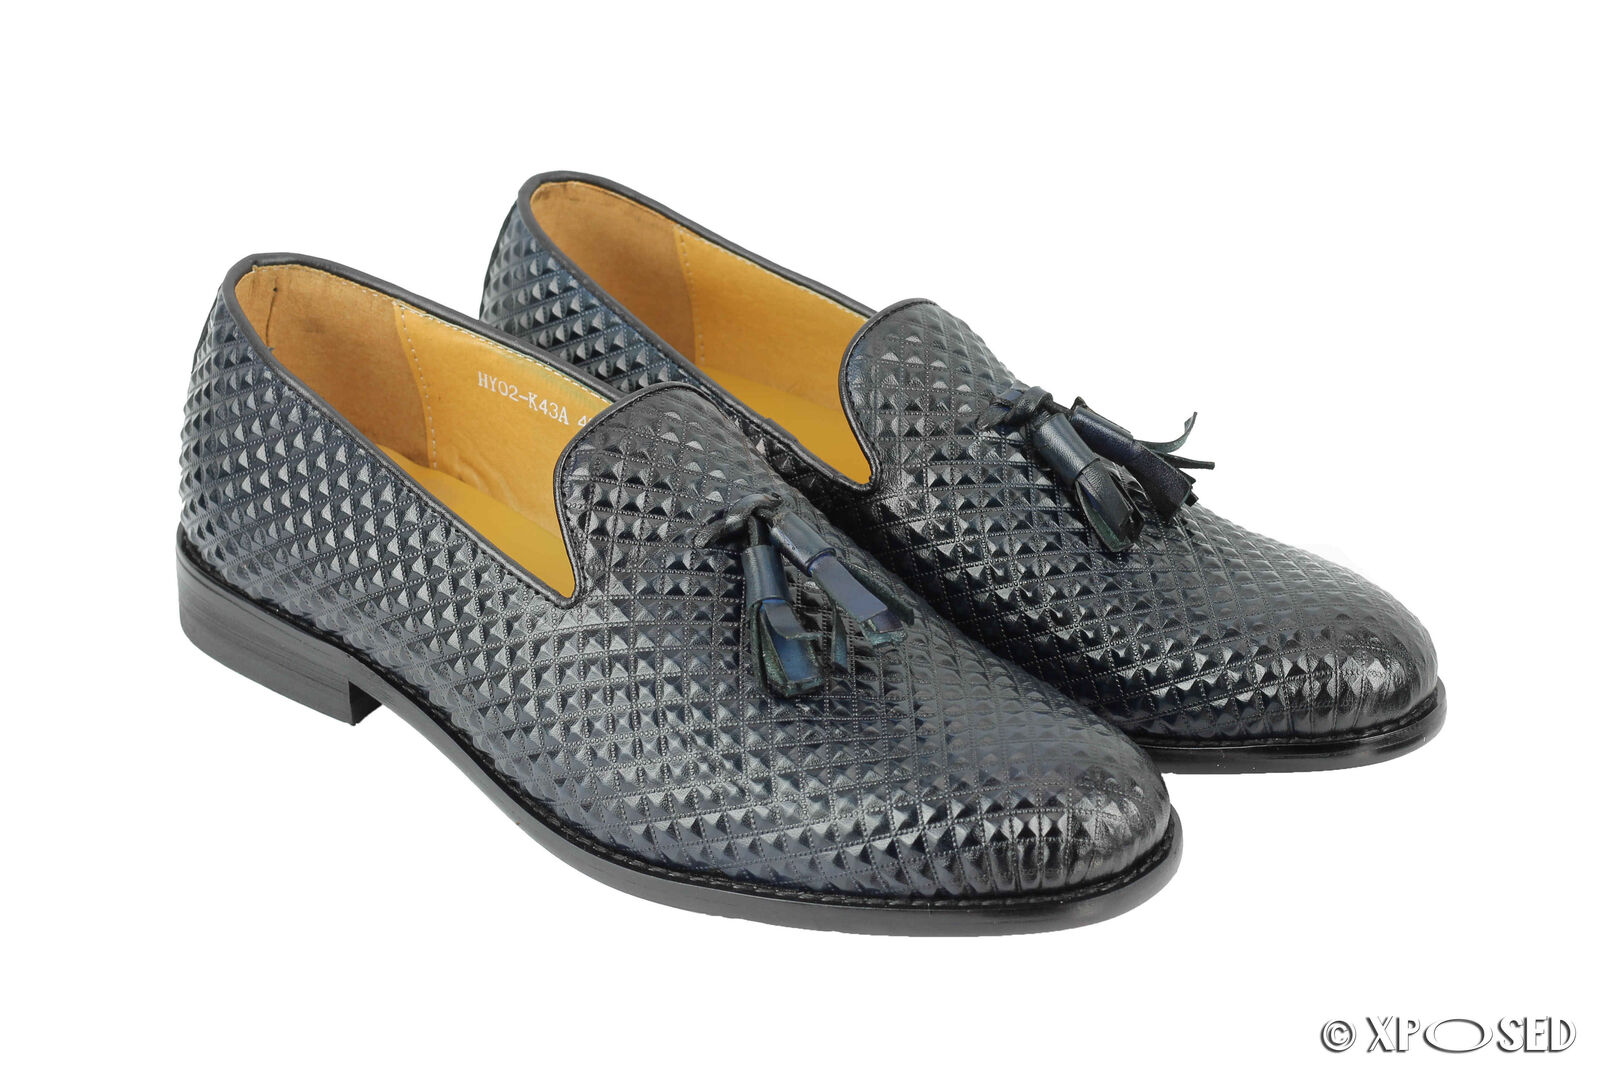 New Mens Blue Real Leather Tassel Loafers Diamond Print Retro Smart Formal Shoes